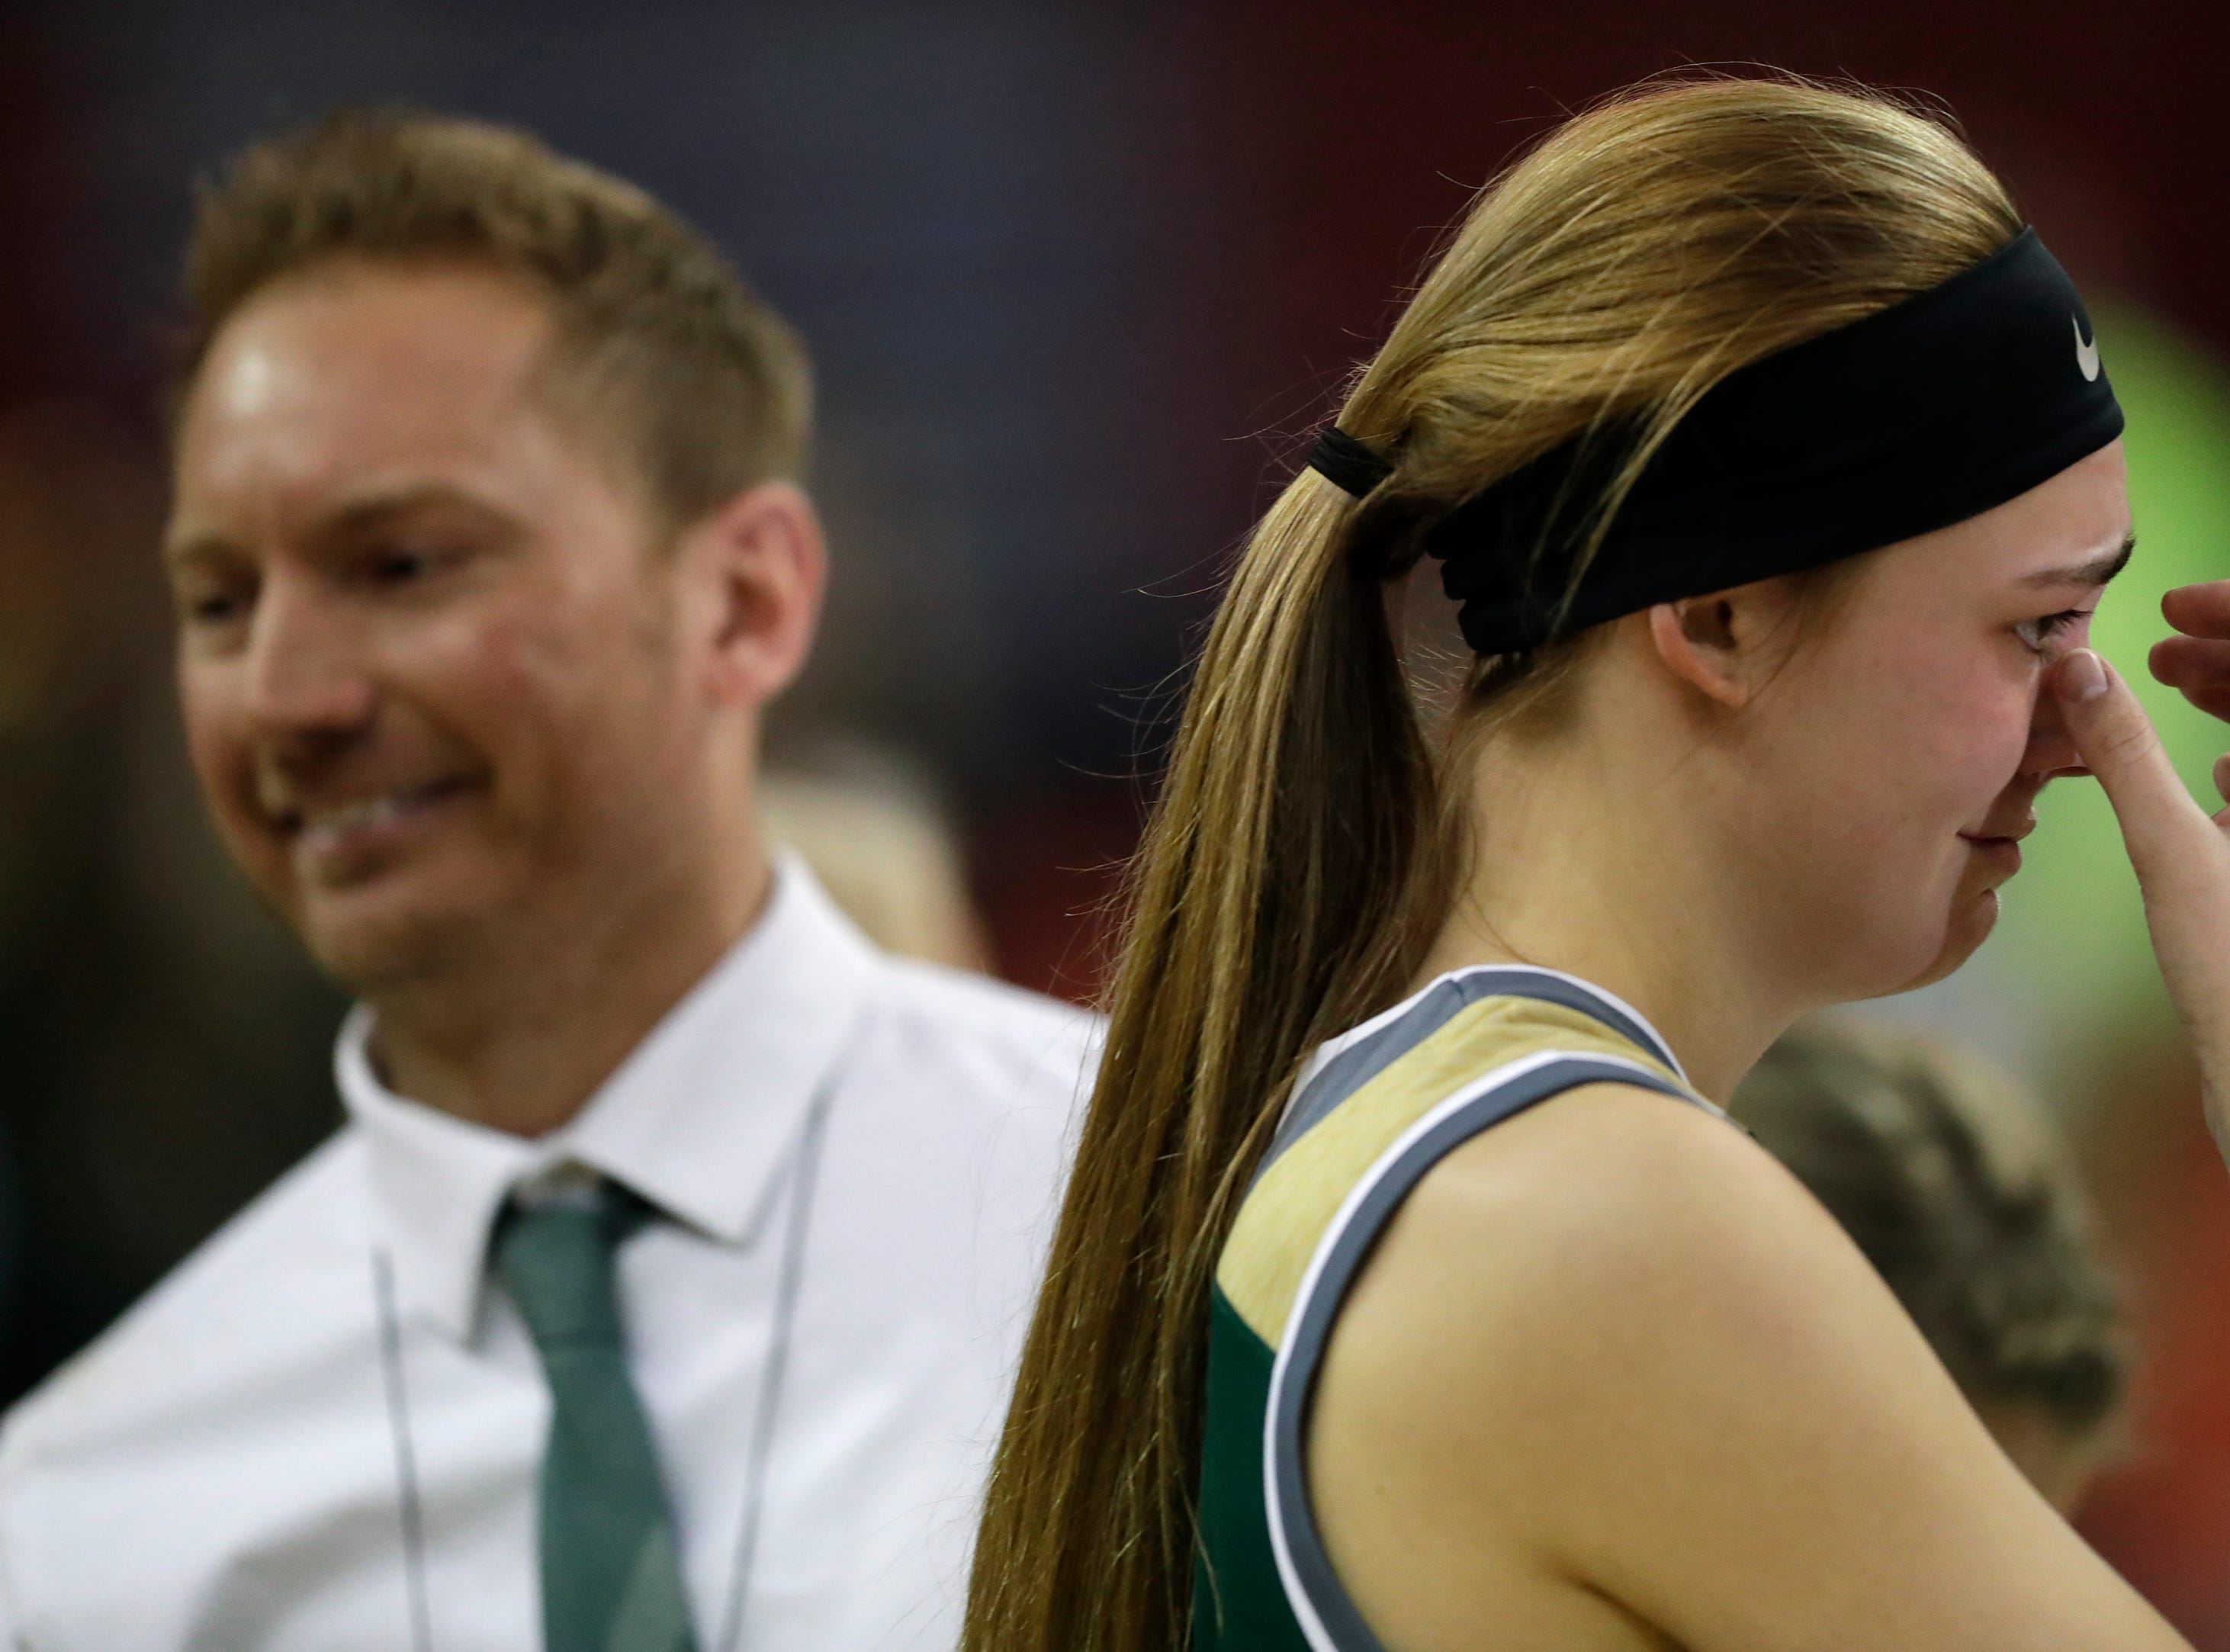 Laconia's Maci Grade (24) wipes away a tear after getting a hug from her coach Chris Morgan in a 64-56 loss to Marshall during their Division 3 championship game at the WIAA girls state basketball tournament Saturday, March 9, 2019, at the Resch Center in Ashwaubenon, Wis. Dan Powers/USA TODAY NETWORK-Wisconsin